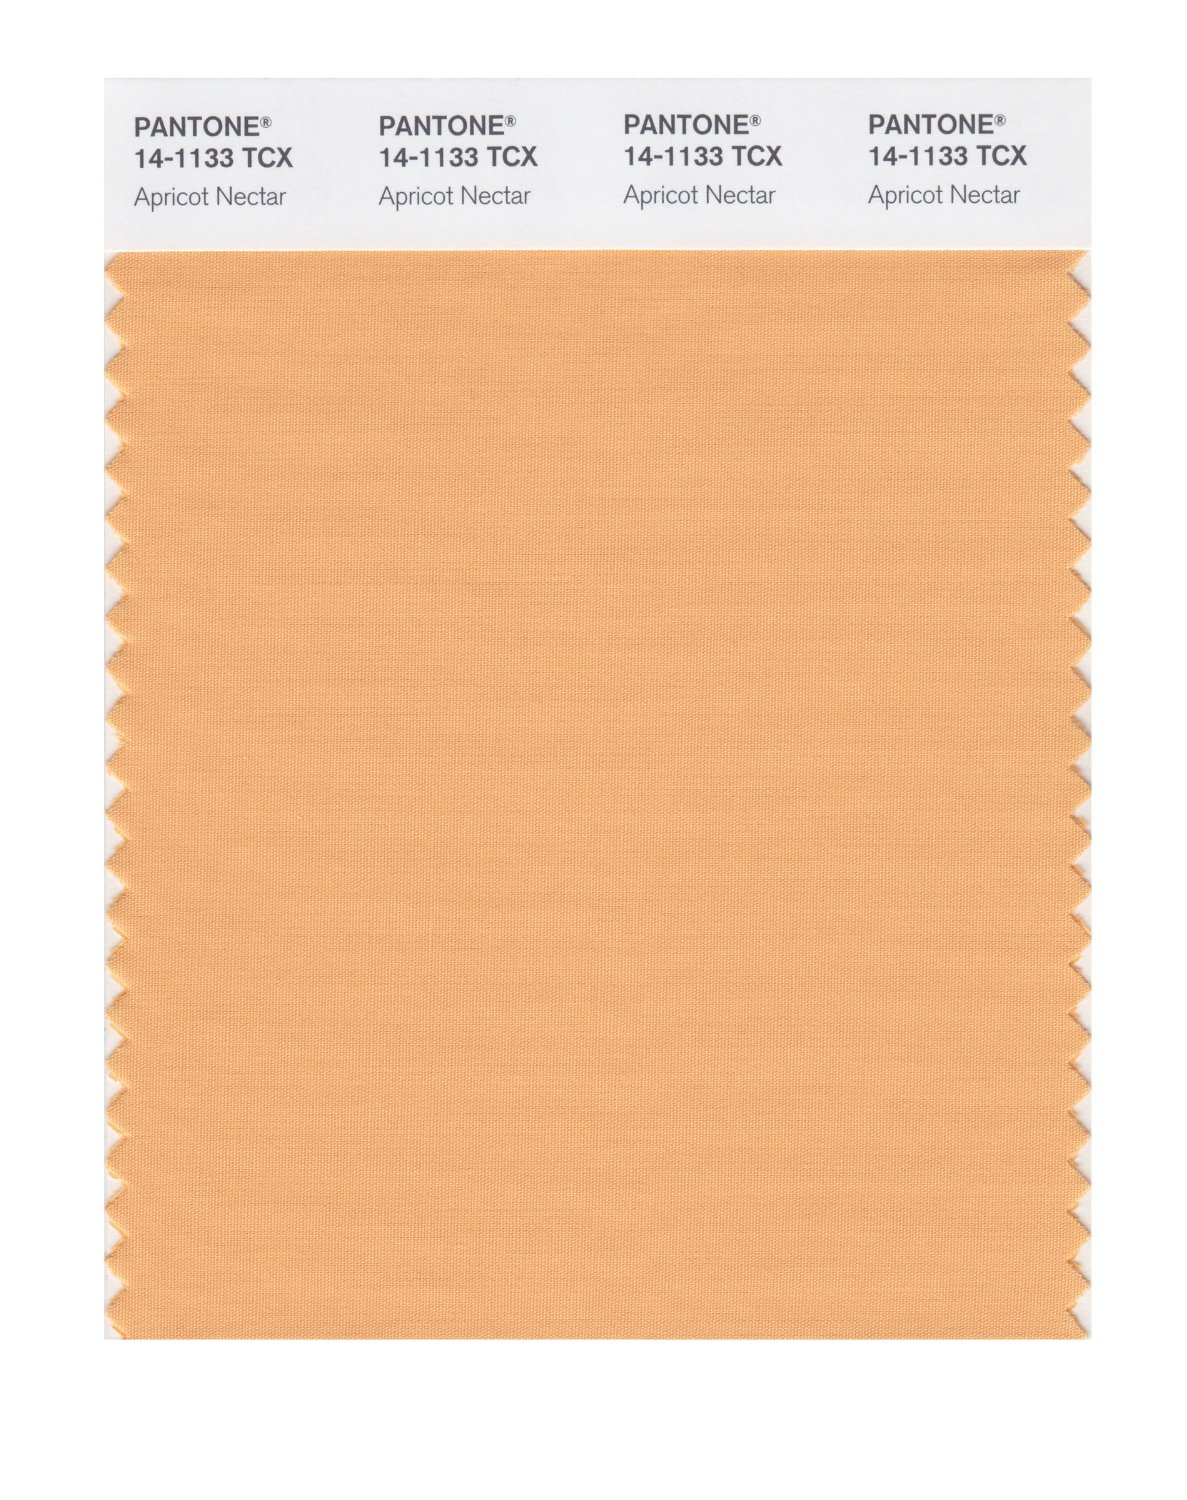 Pantone Smart Swatch 14-1133 Apricot Nectar